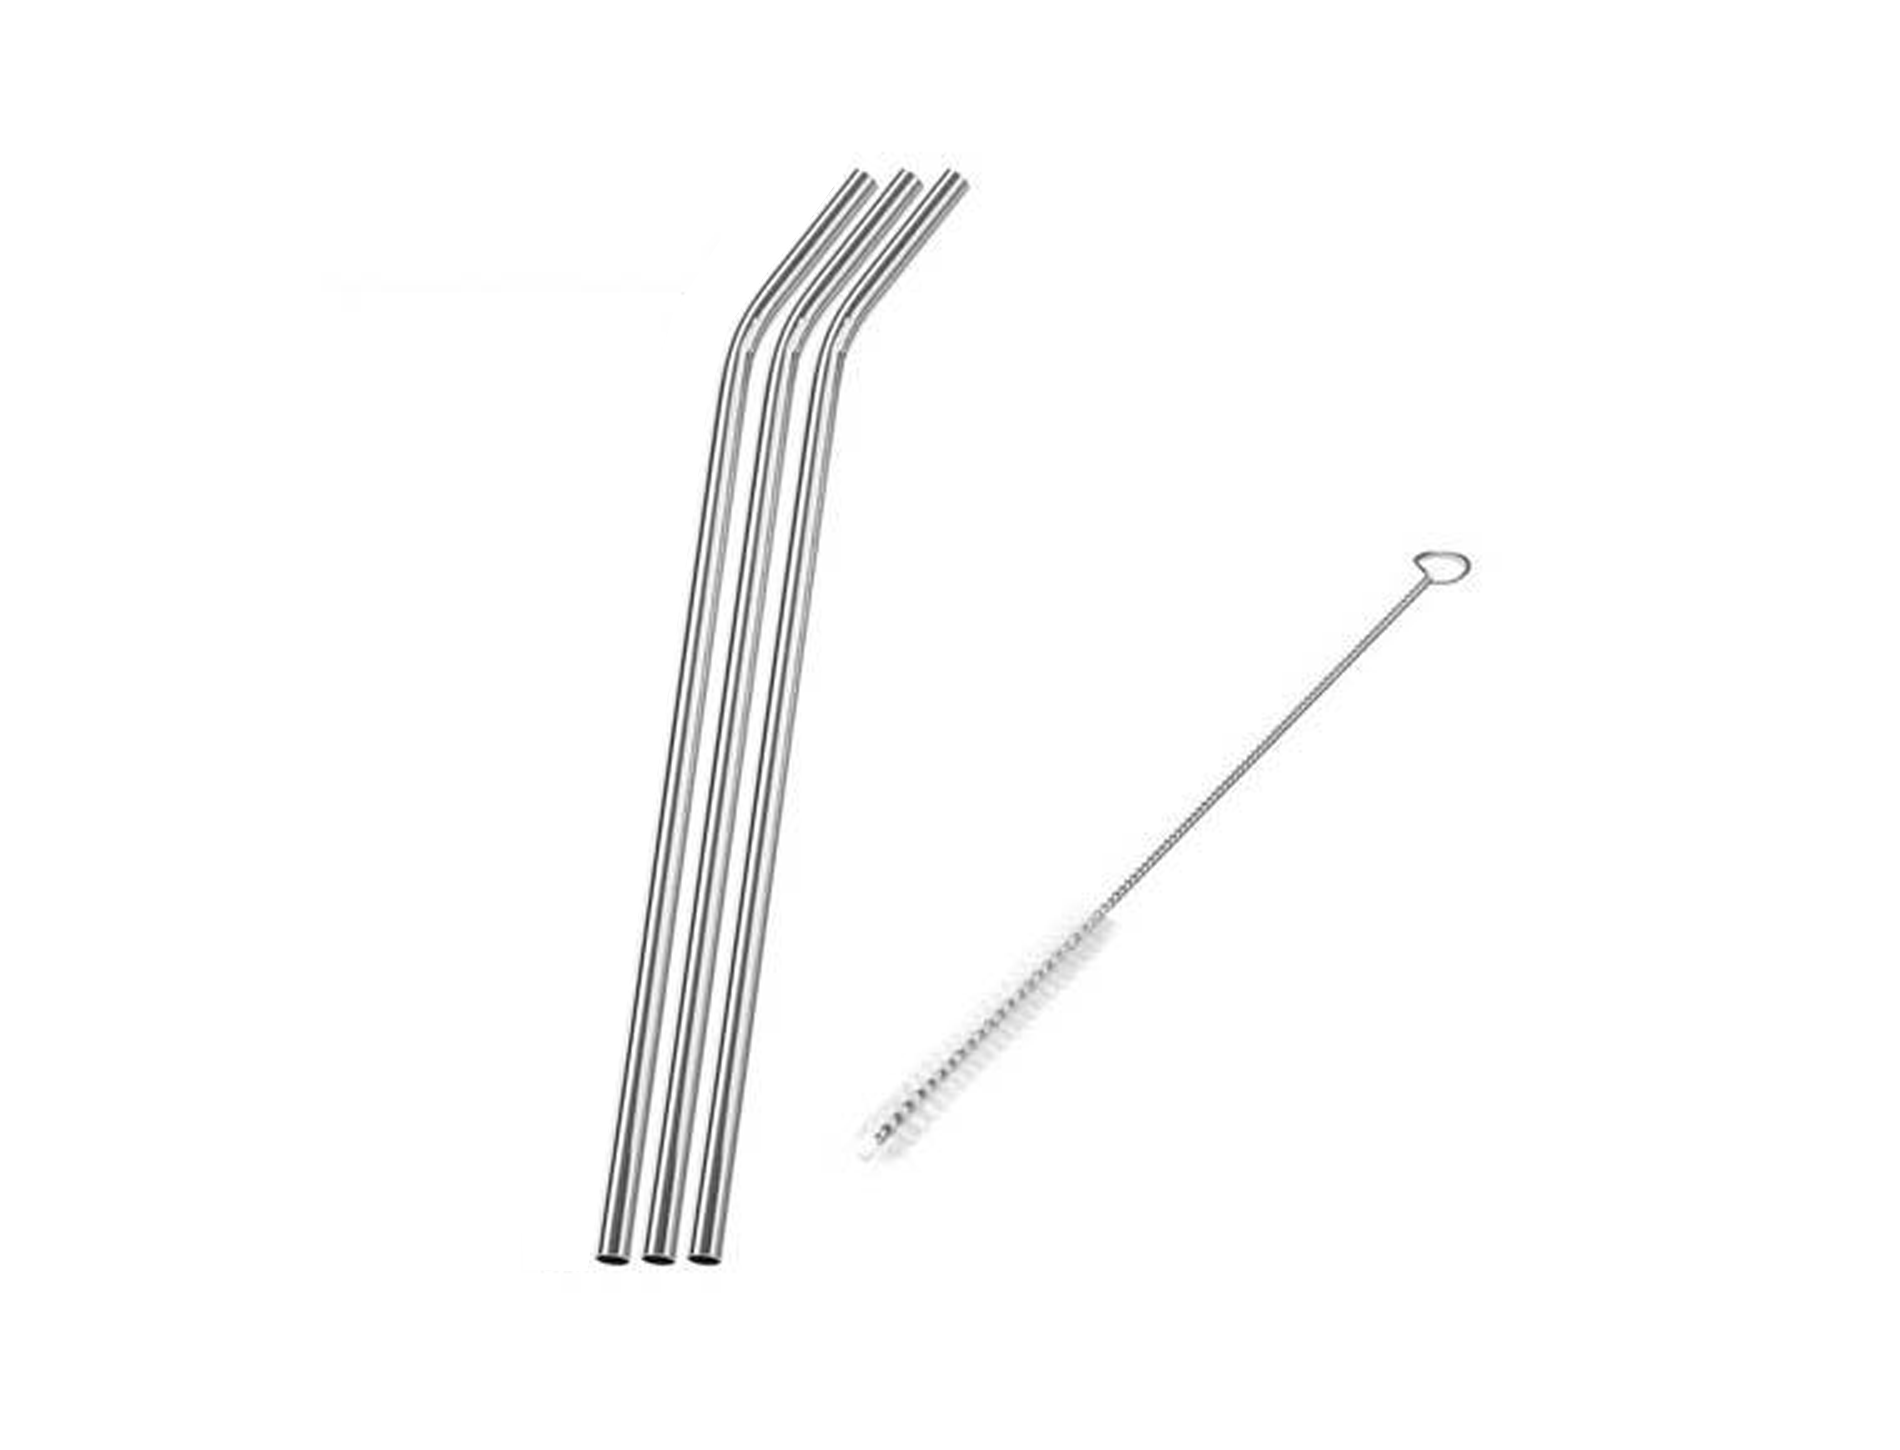 Stainless Steel Drinking Straws and Cleaning Brush - Good Soul Shop